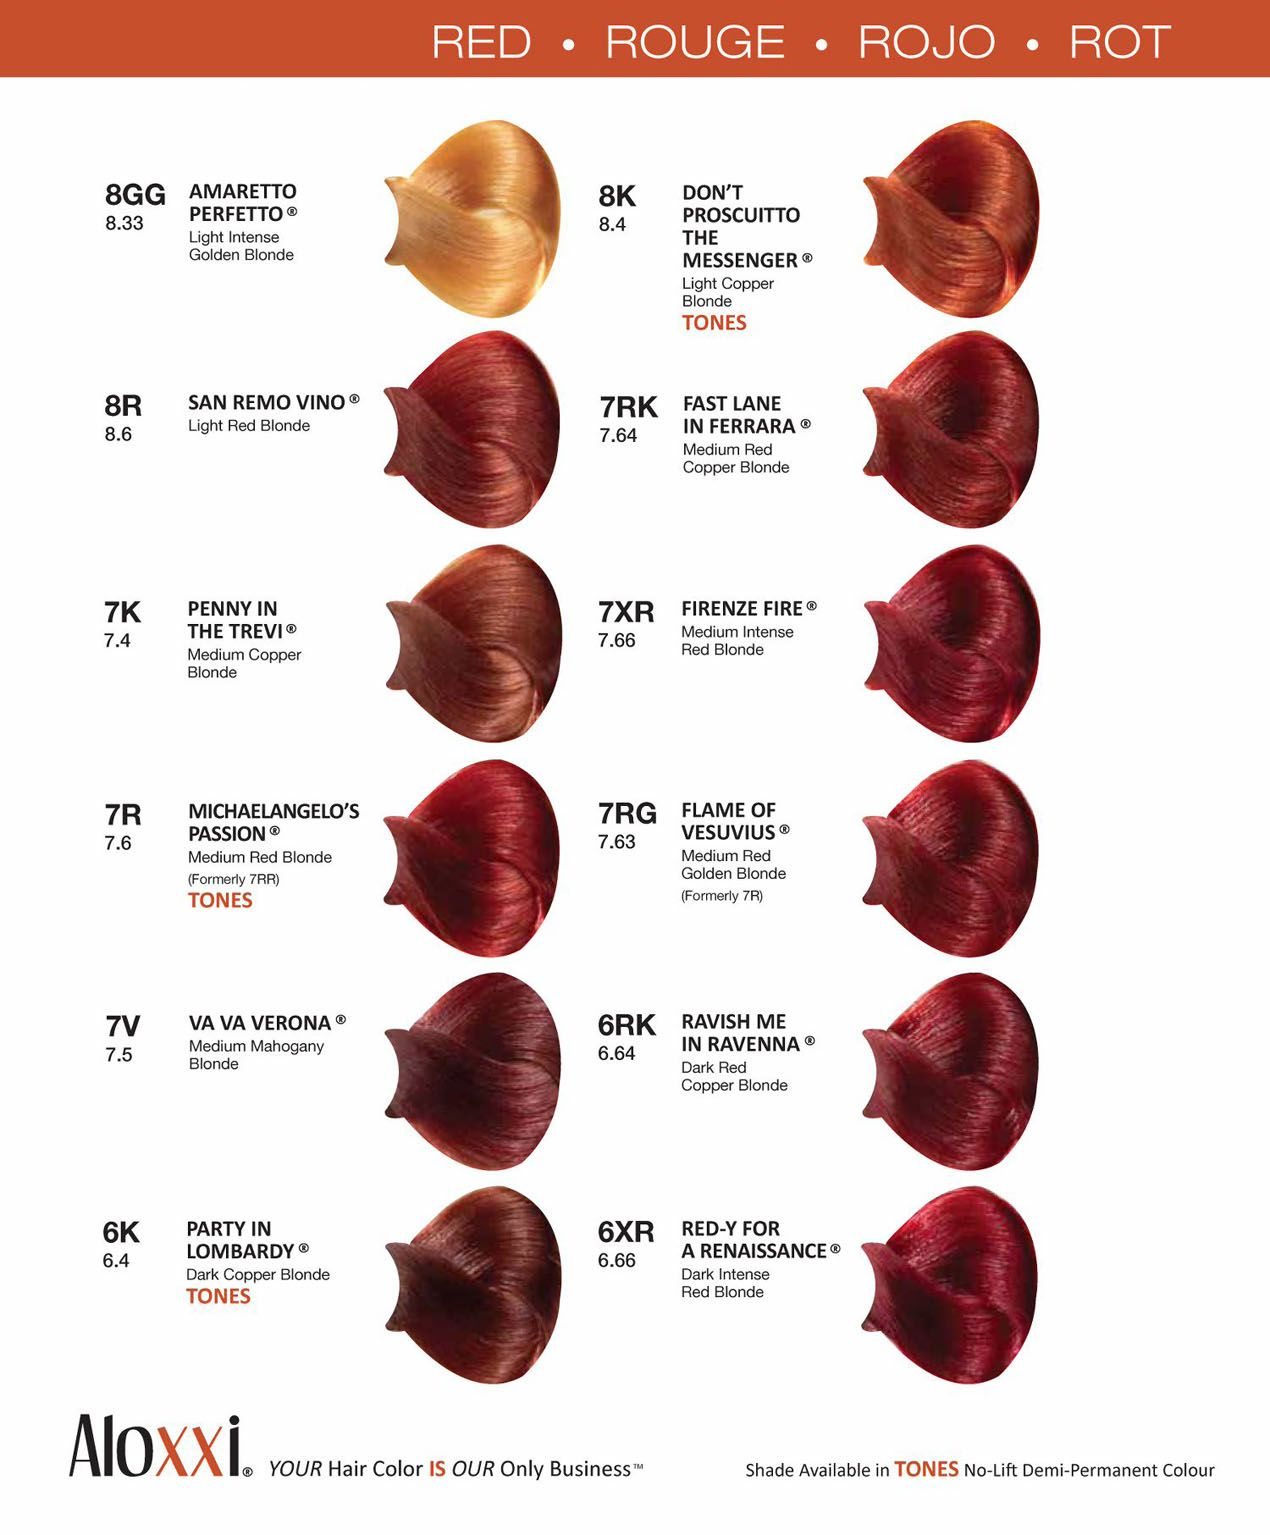 What   your color personality also best red haute hair images colorful colors rh pinterest